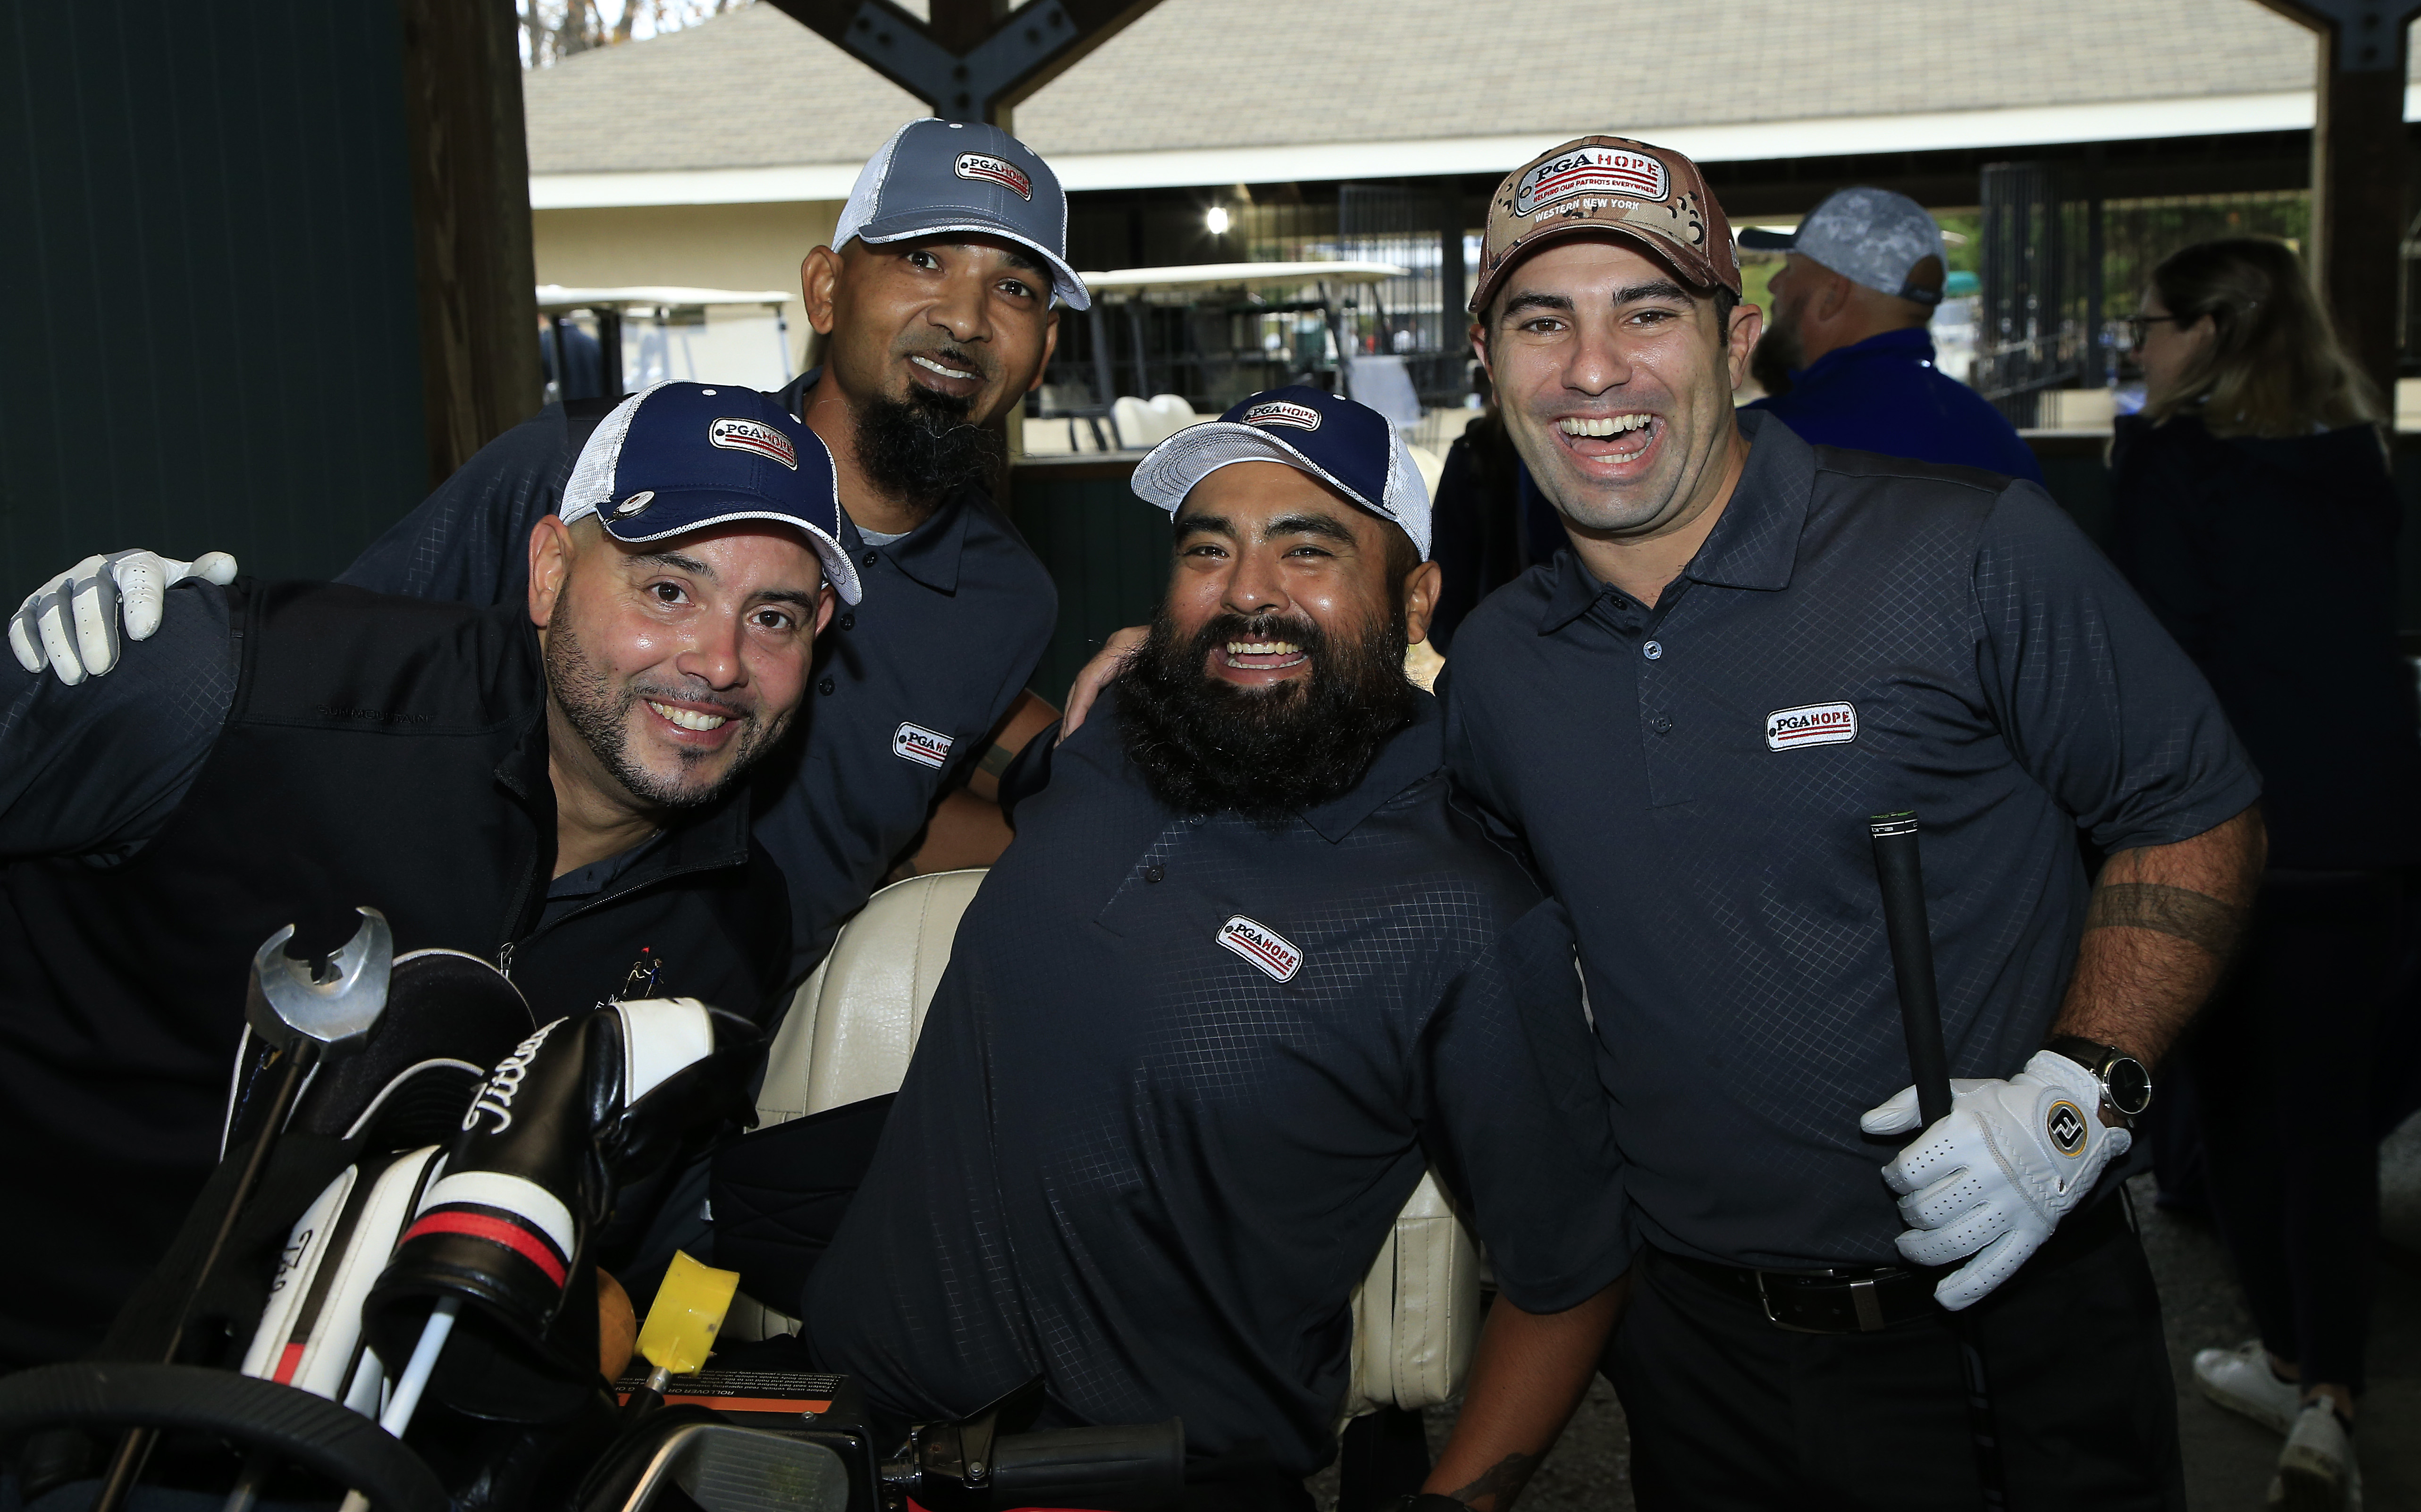 20 Military Veterans with Disabilities Named PGA HOPE Ambassadors